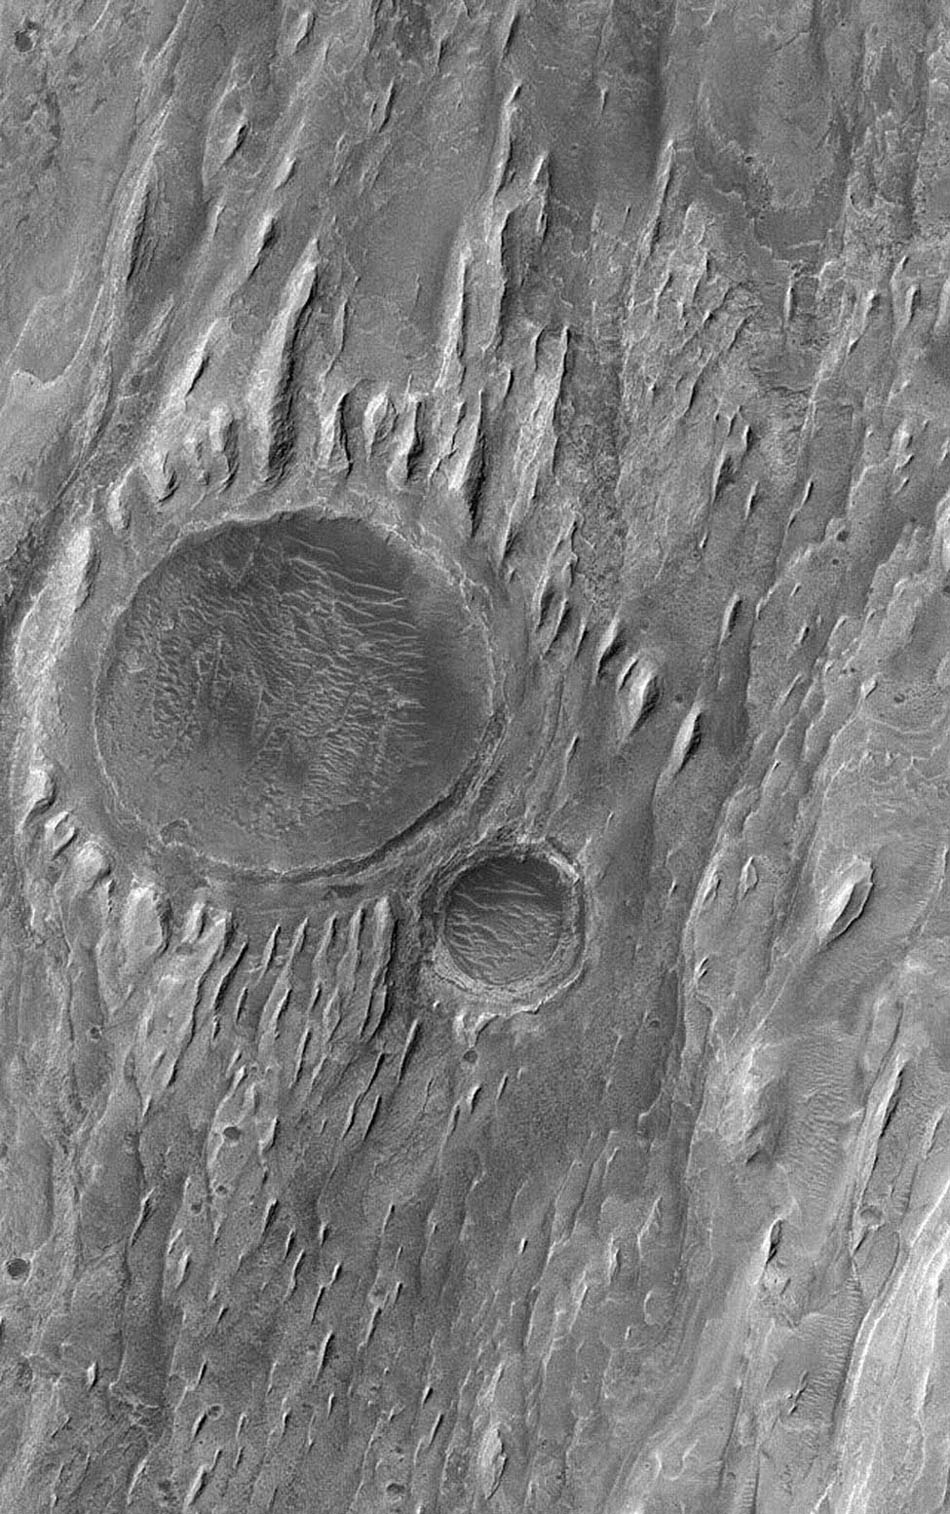 NASA's Mars Global Surveyor shows the remains of two impact craters that were filled, buried, and then exhumed from within layered sedimentary rock in the martian crater, Gale. Wind erosion has sculpted tapered yardang ridges in the uppermost rock layers.